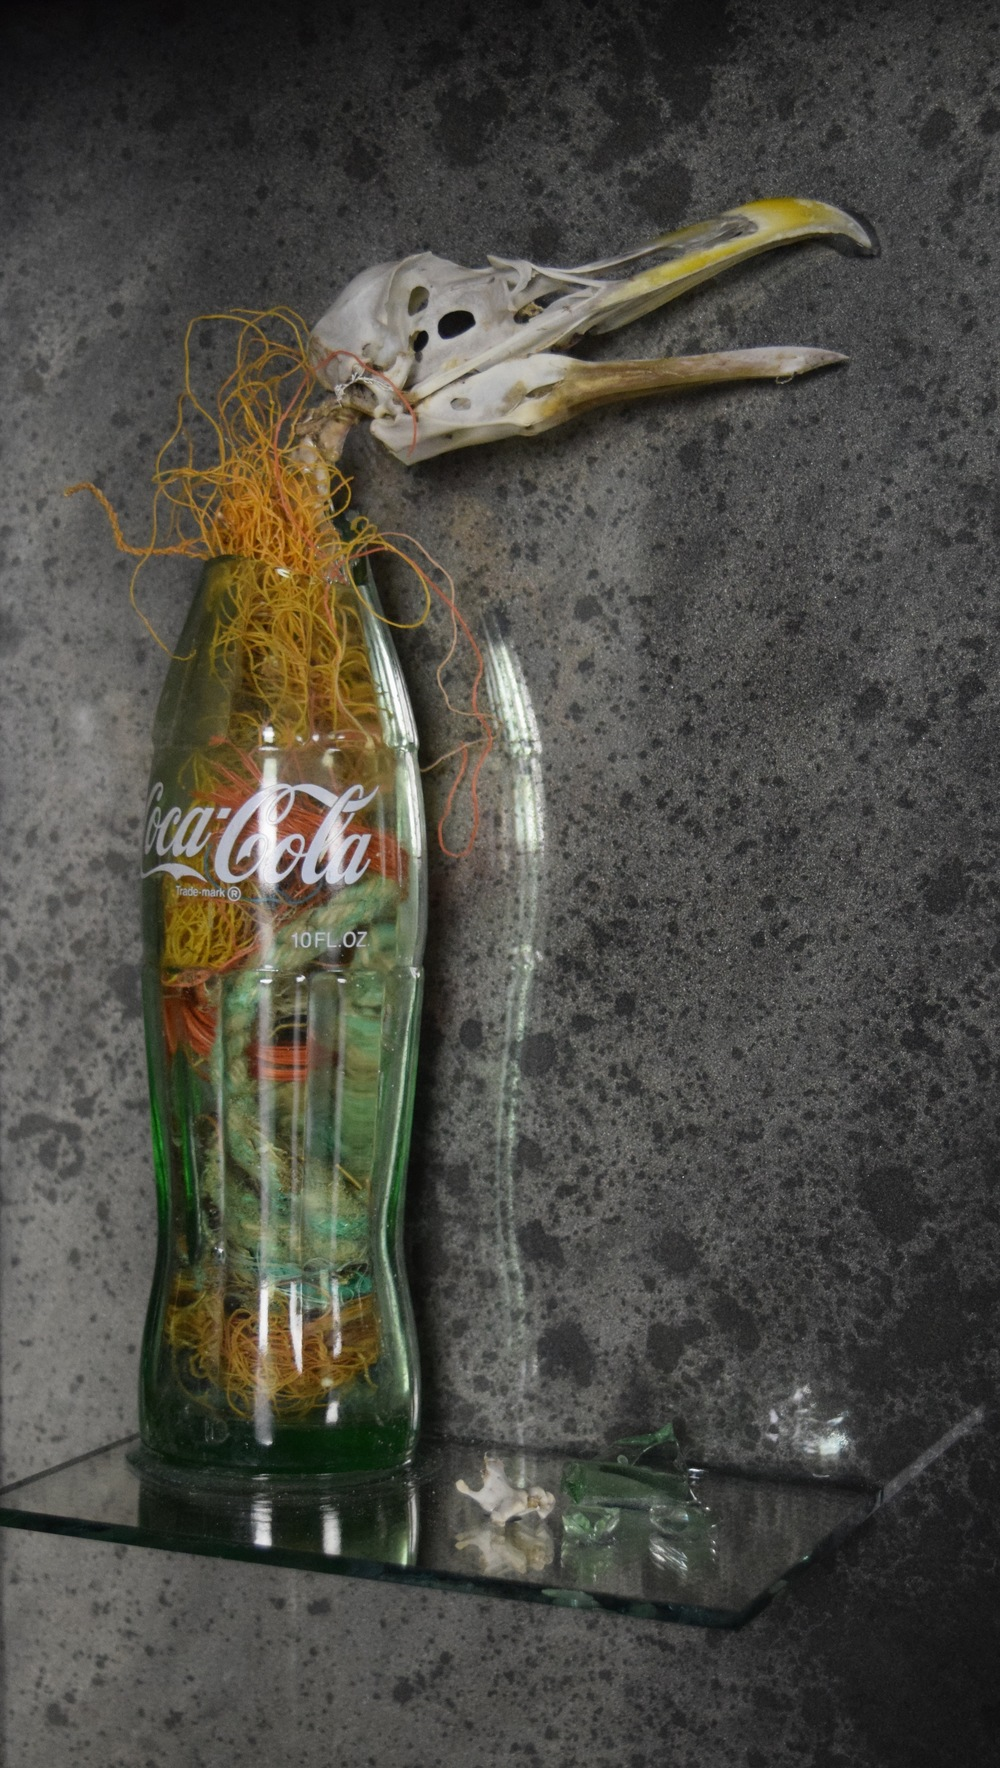 MessageinaBottle1CloseUp.jpg